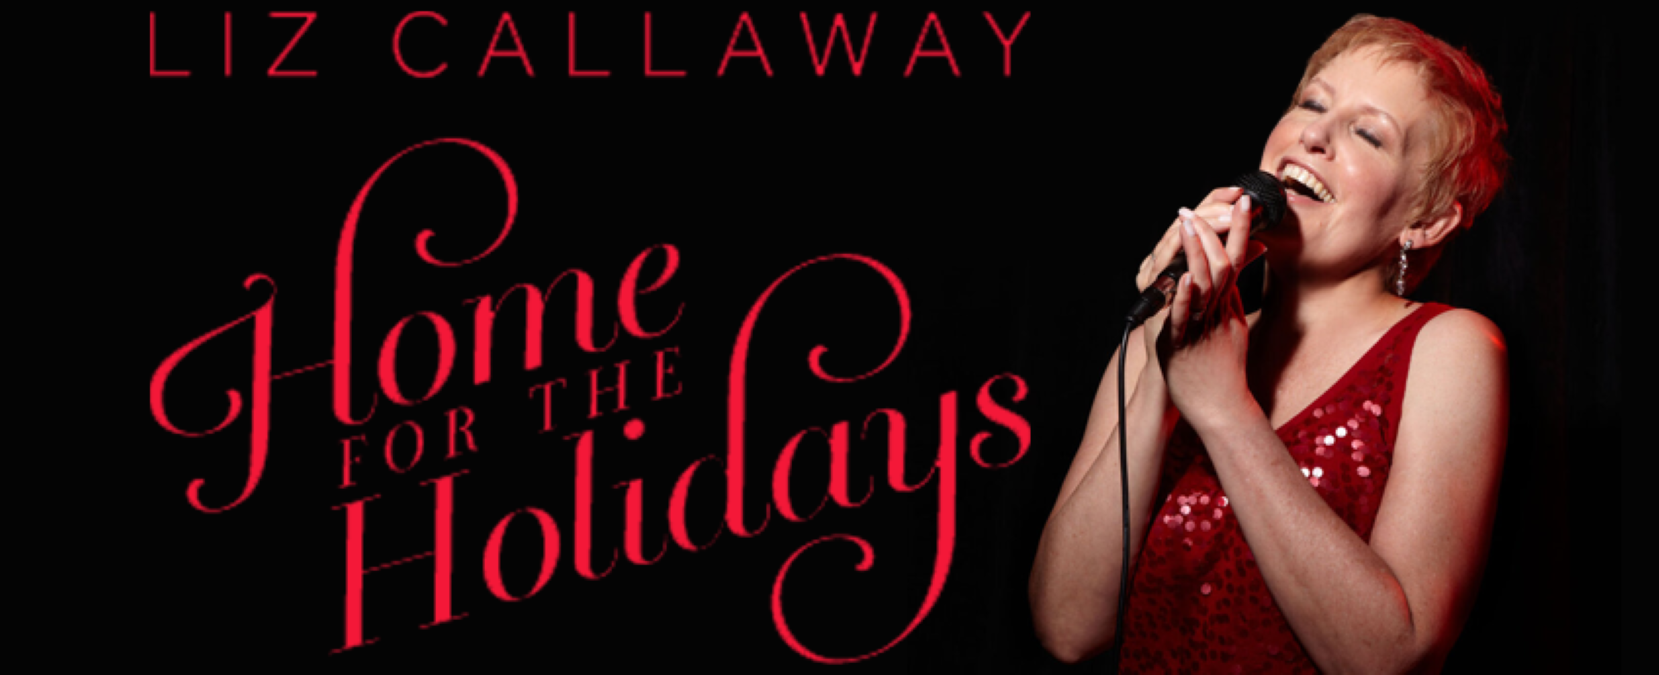 Liz Calloway: Home for the Holidays Virtual Concert